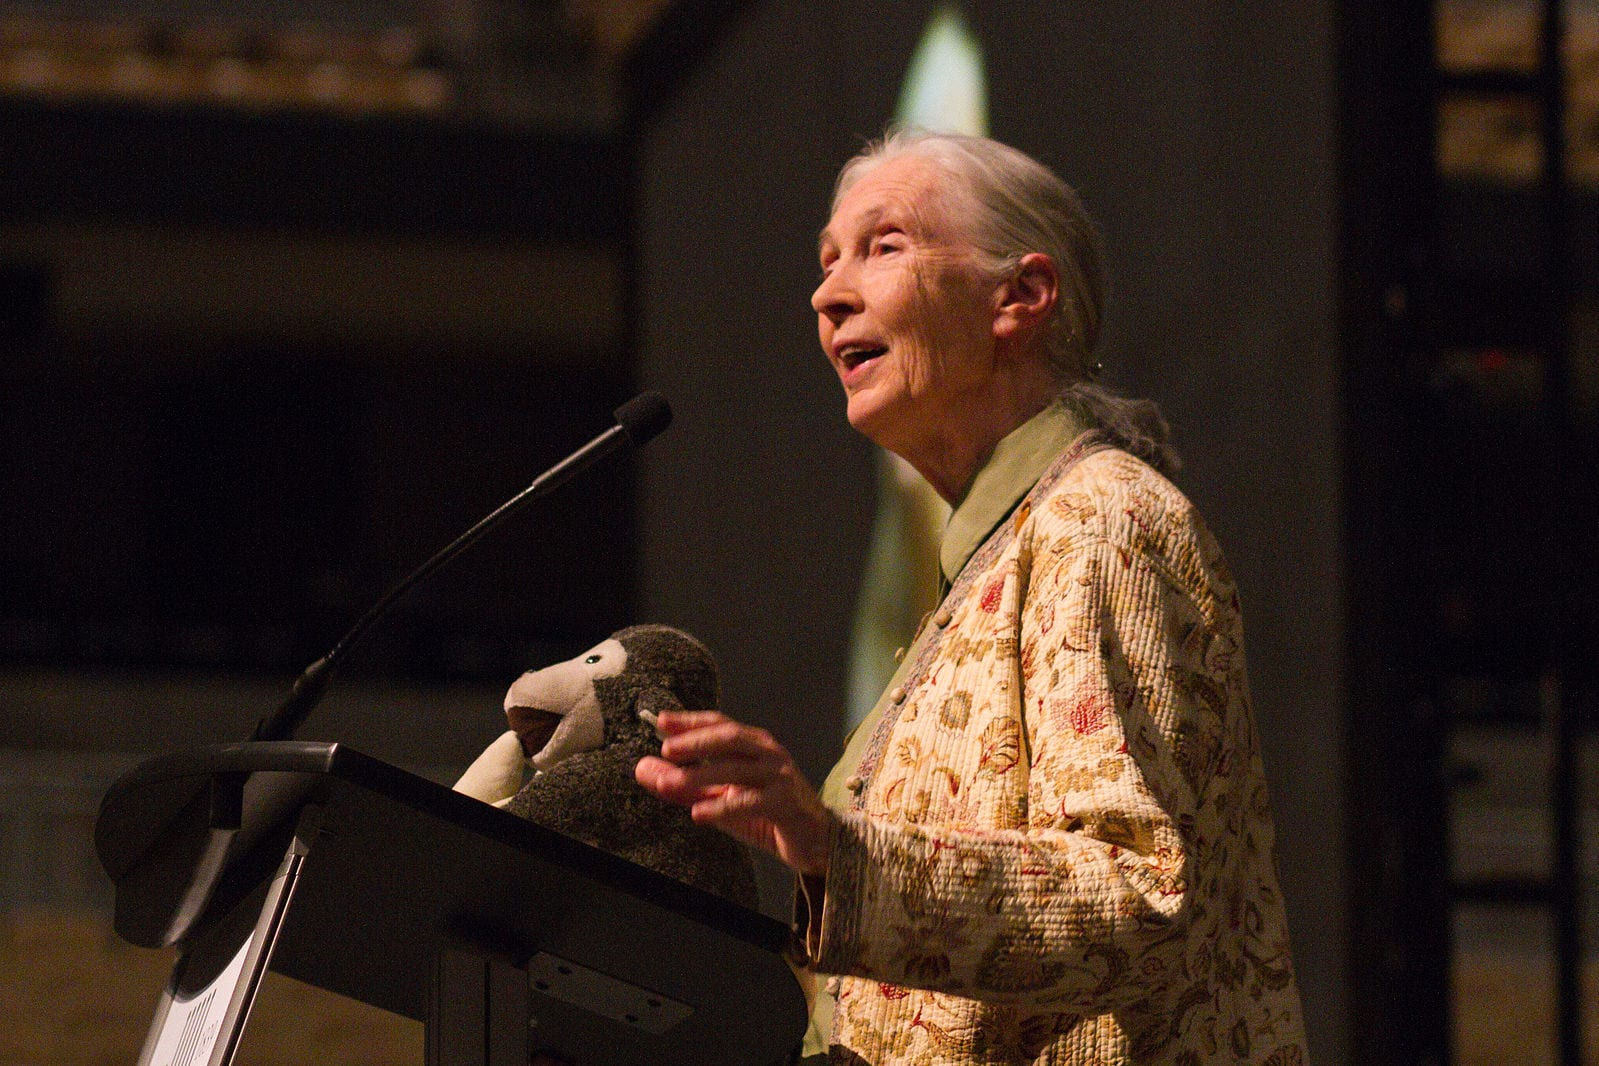 Jane Goodall partners with Neptune Wellness Solutions for forest-friendly hemp brand